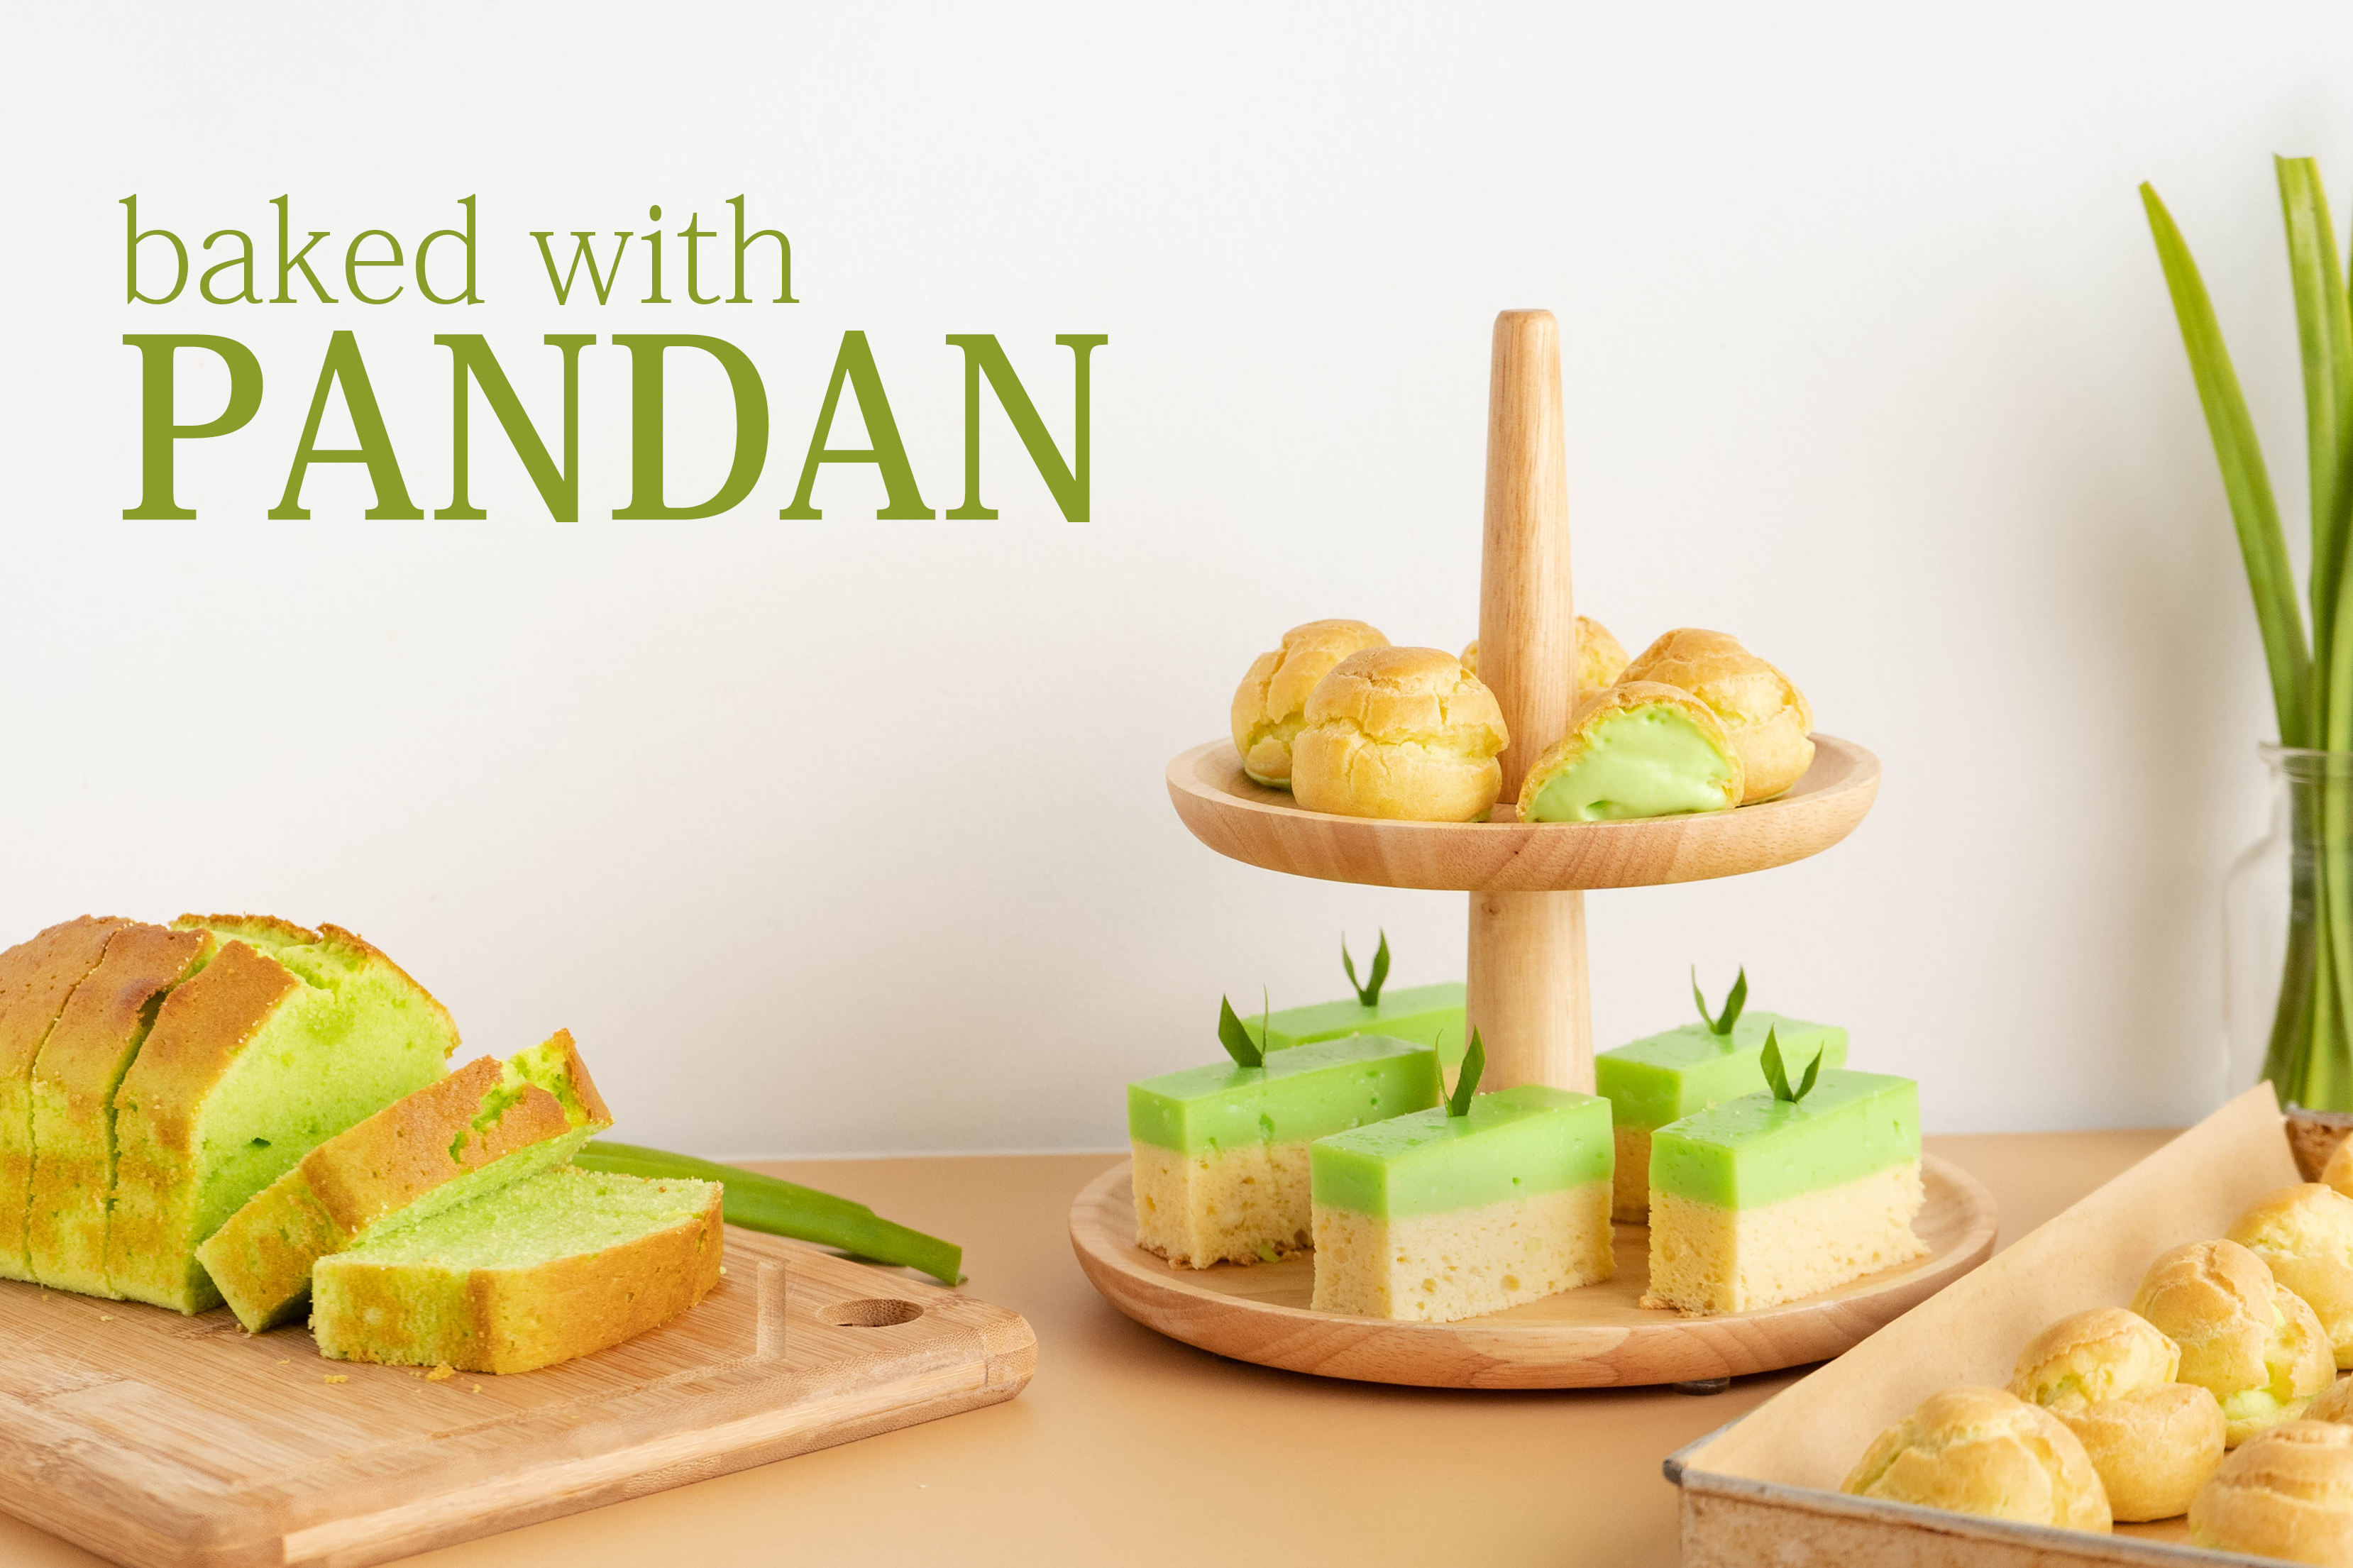 840x560-Baked-with-Pandan-w-Title